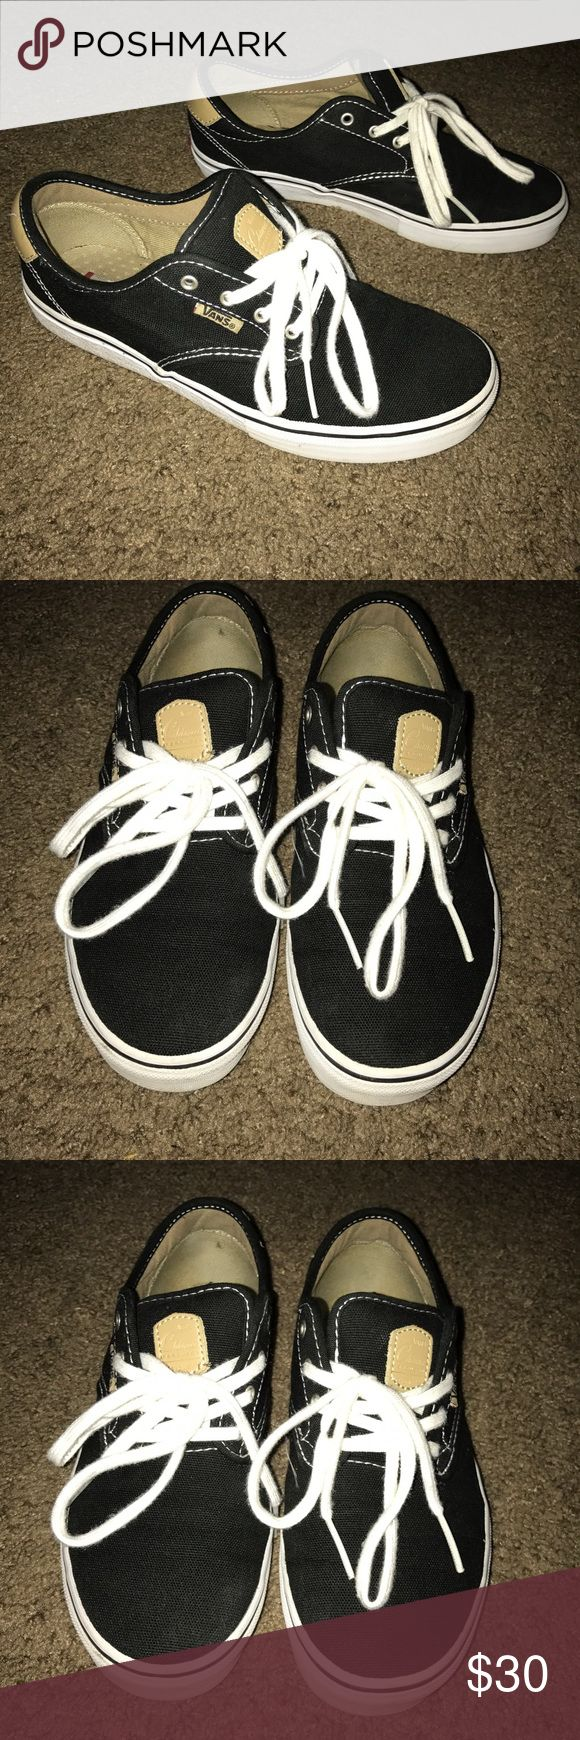 Vans Chukka Low Previously worn but in great condition as pictured! Grab these unique black, tan, and white sneakers to rock with any style. Boys 6.0 = Women's 7.5 (Vans size chart) Vans Shoes Sneakers